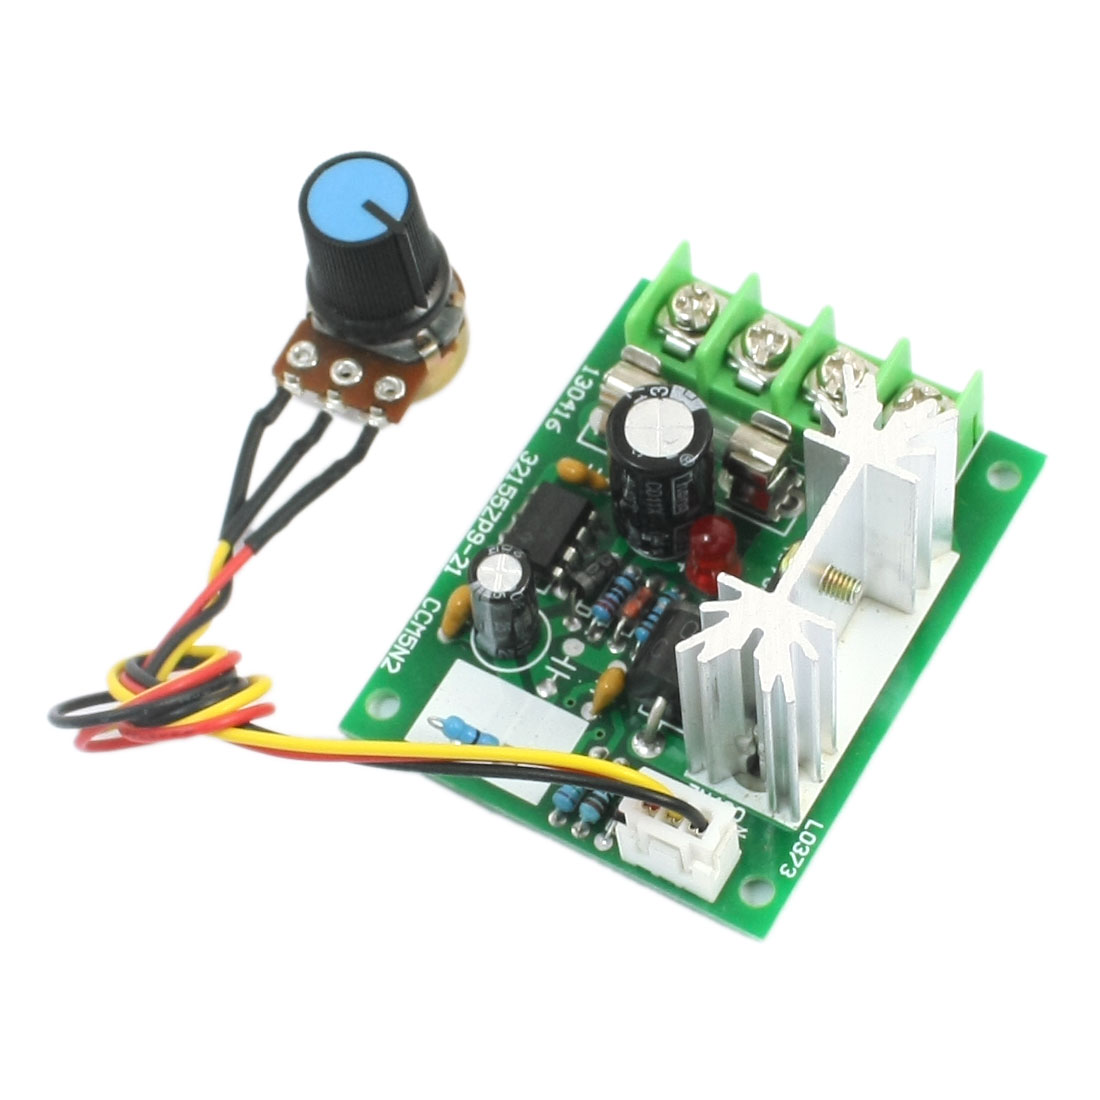 DC5-16V 200W B10K Potentiometer Adjustable Pulse Width Modulation PWM Motor Driver Speed Controller Module 8.3""